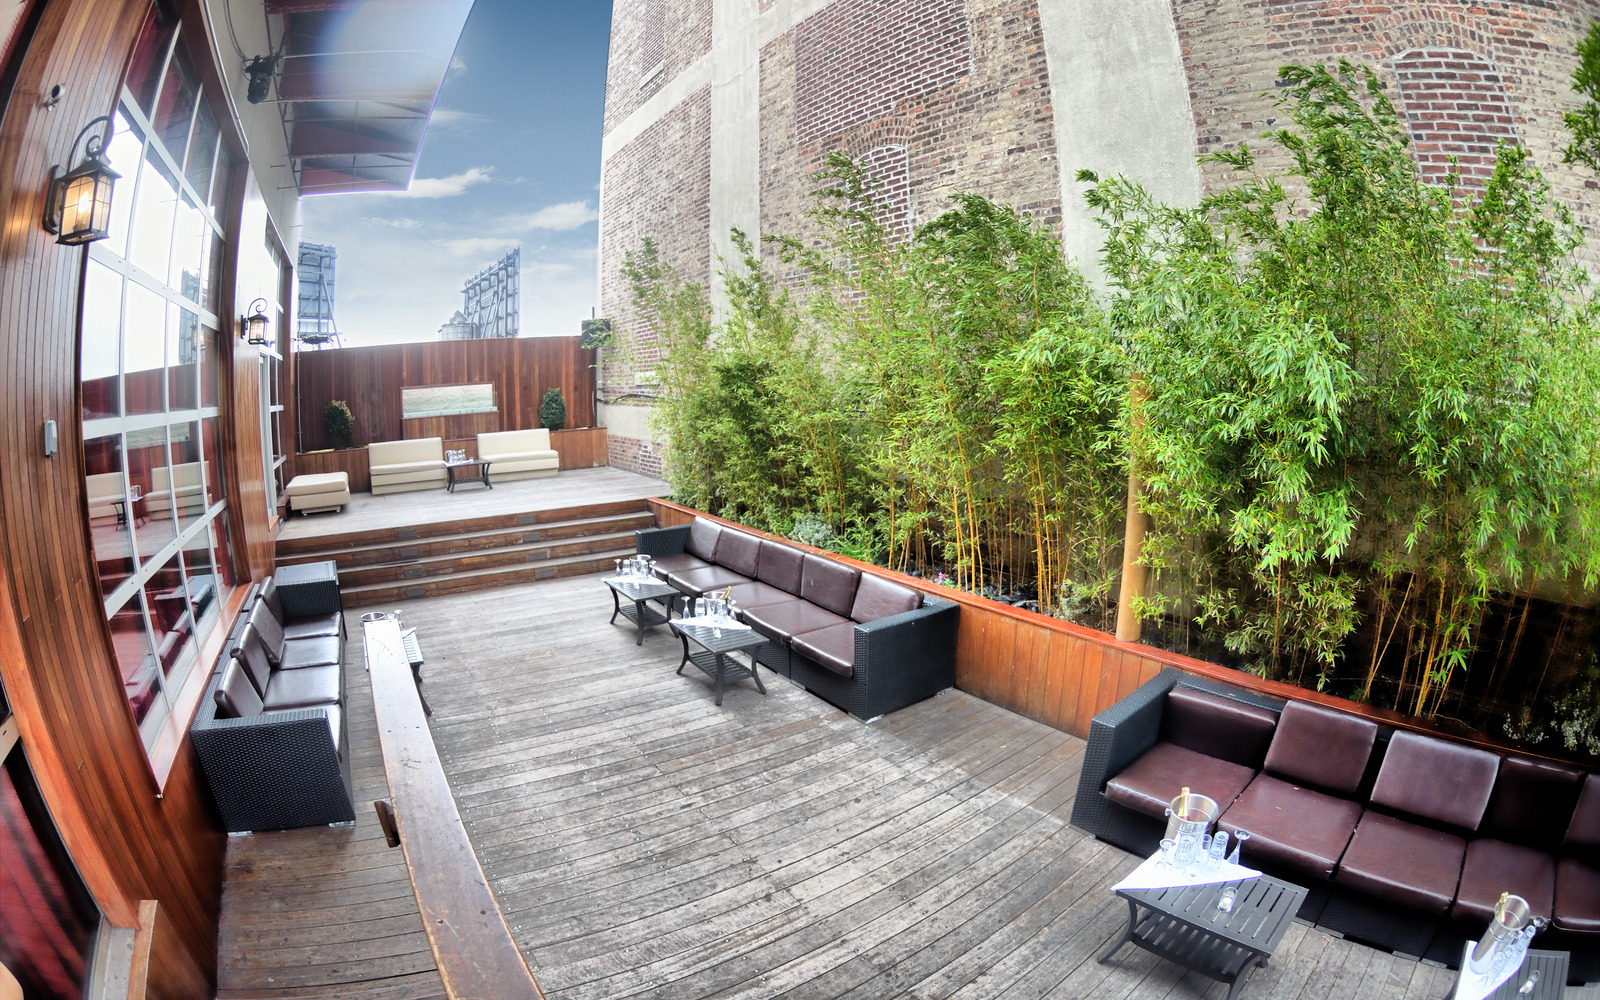 Photo #10 The Garden Terrace (Outdoor Space with Sound & Bar) at Hudson Terrace